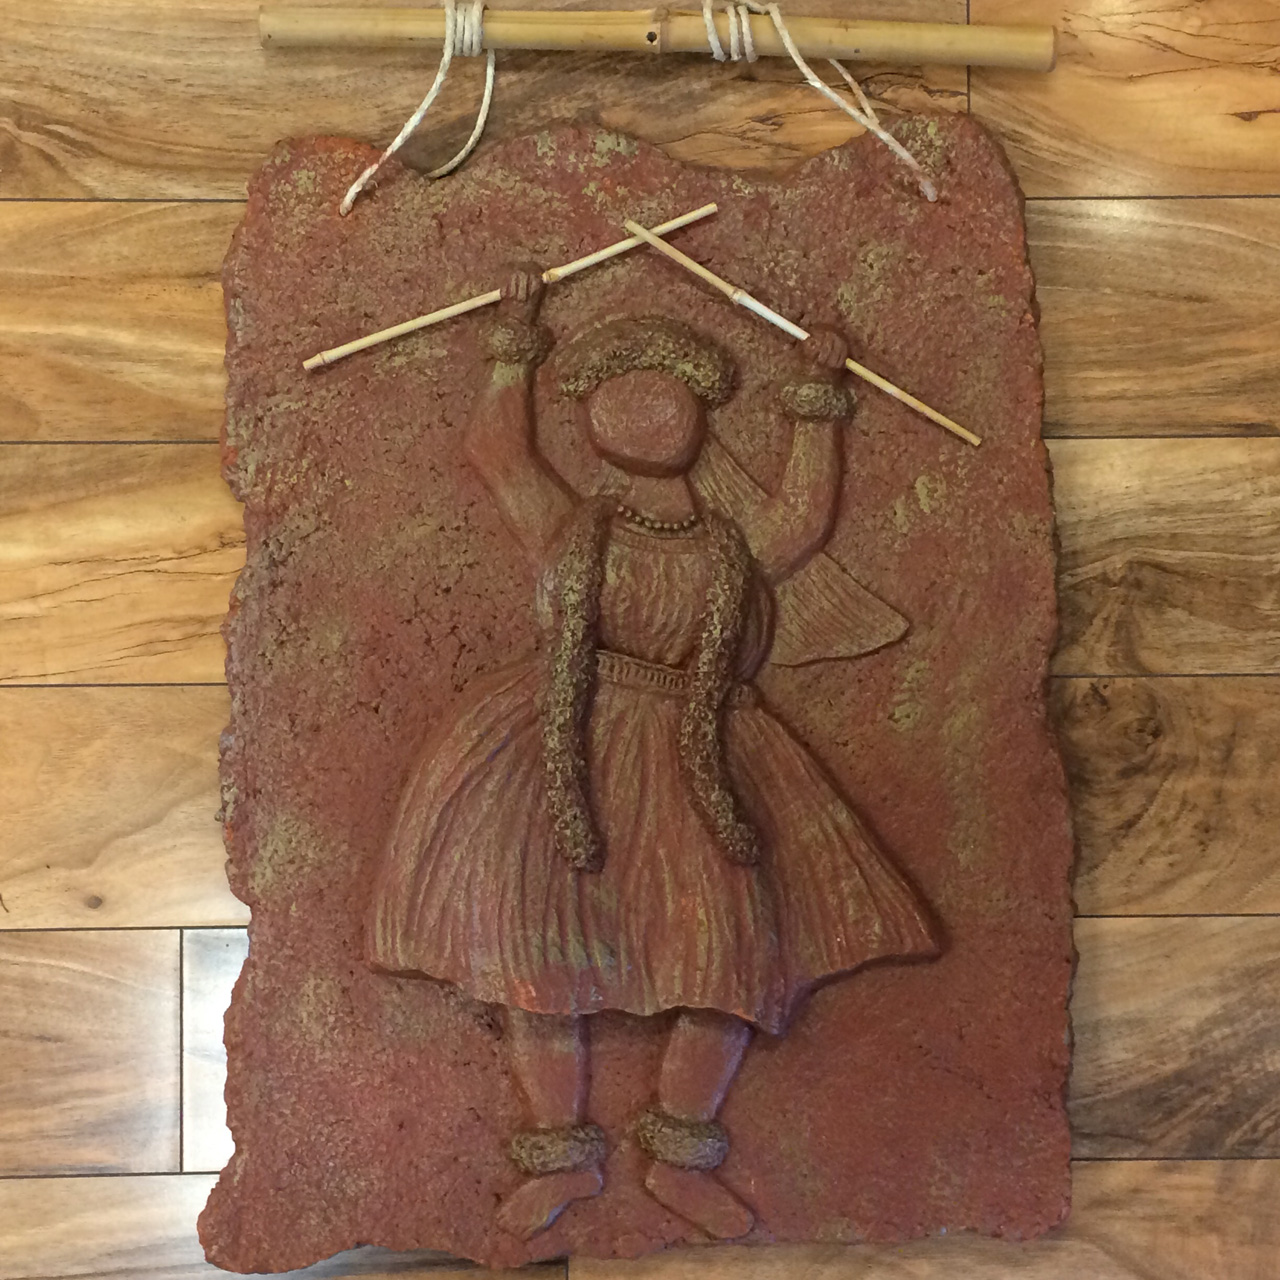 Hula Wahine by Kalei Engel depiciting a female hula dancer in Hawaiian red clay and paper medium and gold accents with natural bamboo hanger